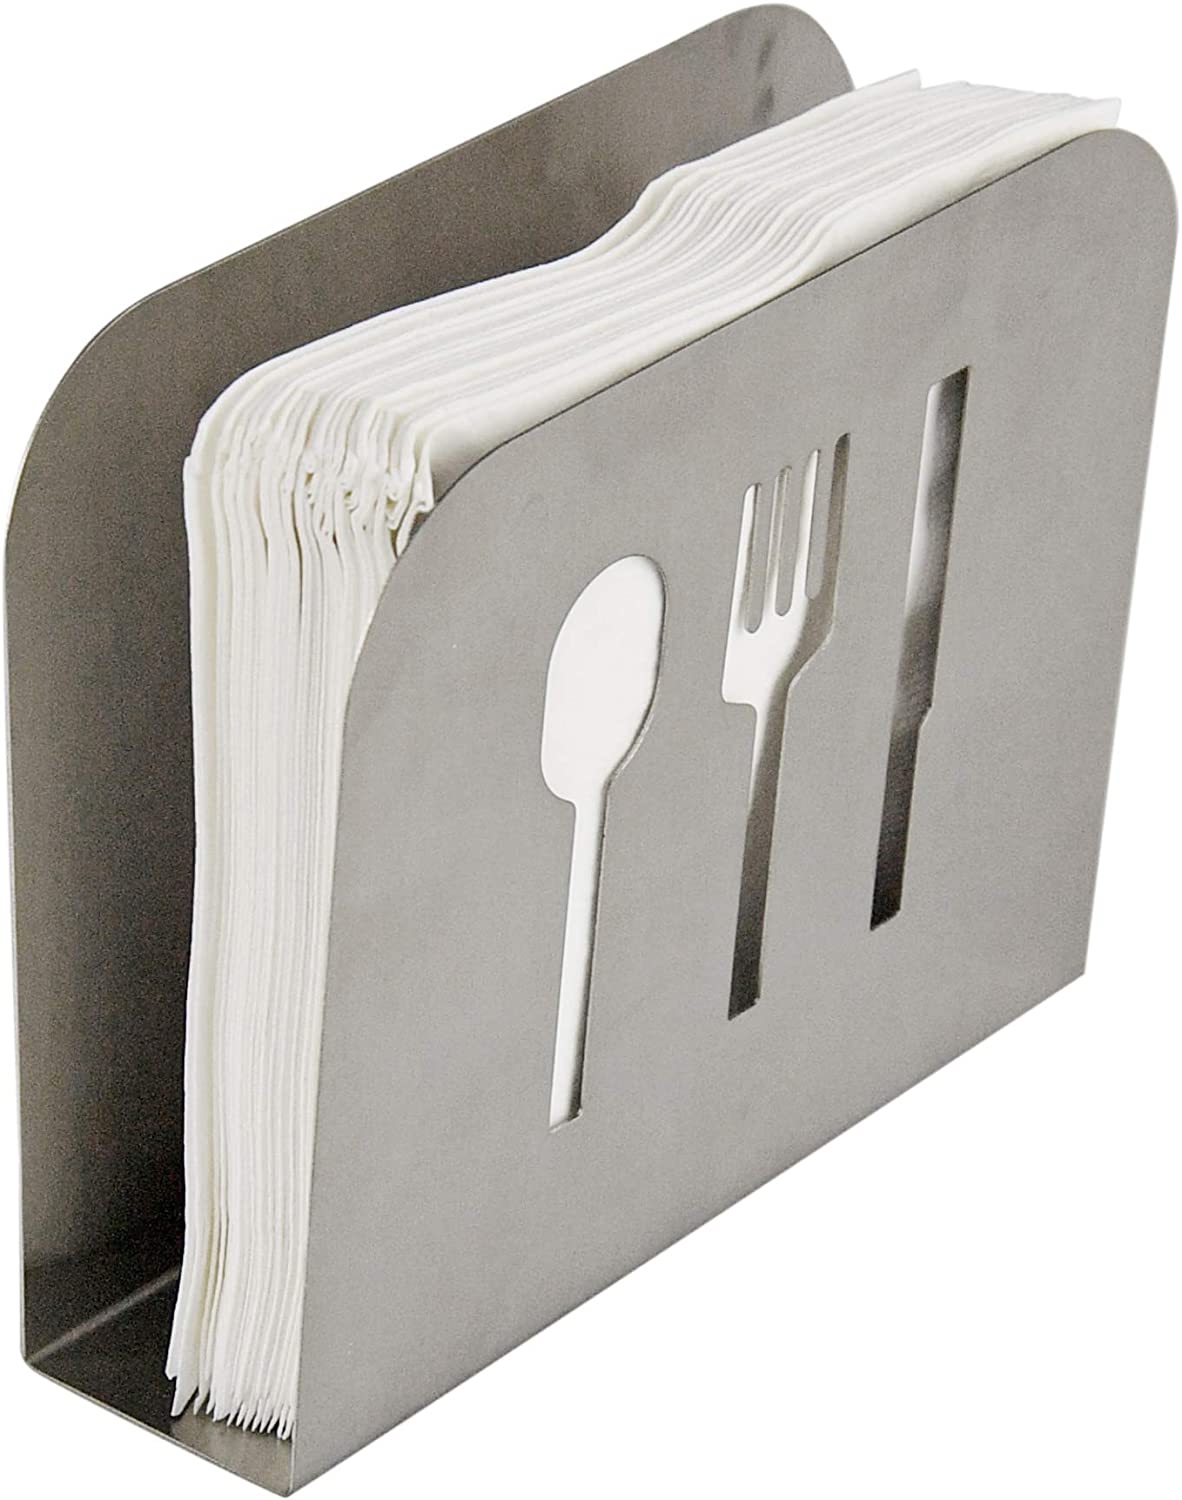 HOME-X Stainless-Steel Napkin Holder, Spoon, Fork, and Knife Cutout Shapes-6